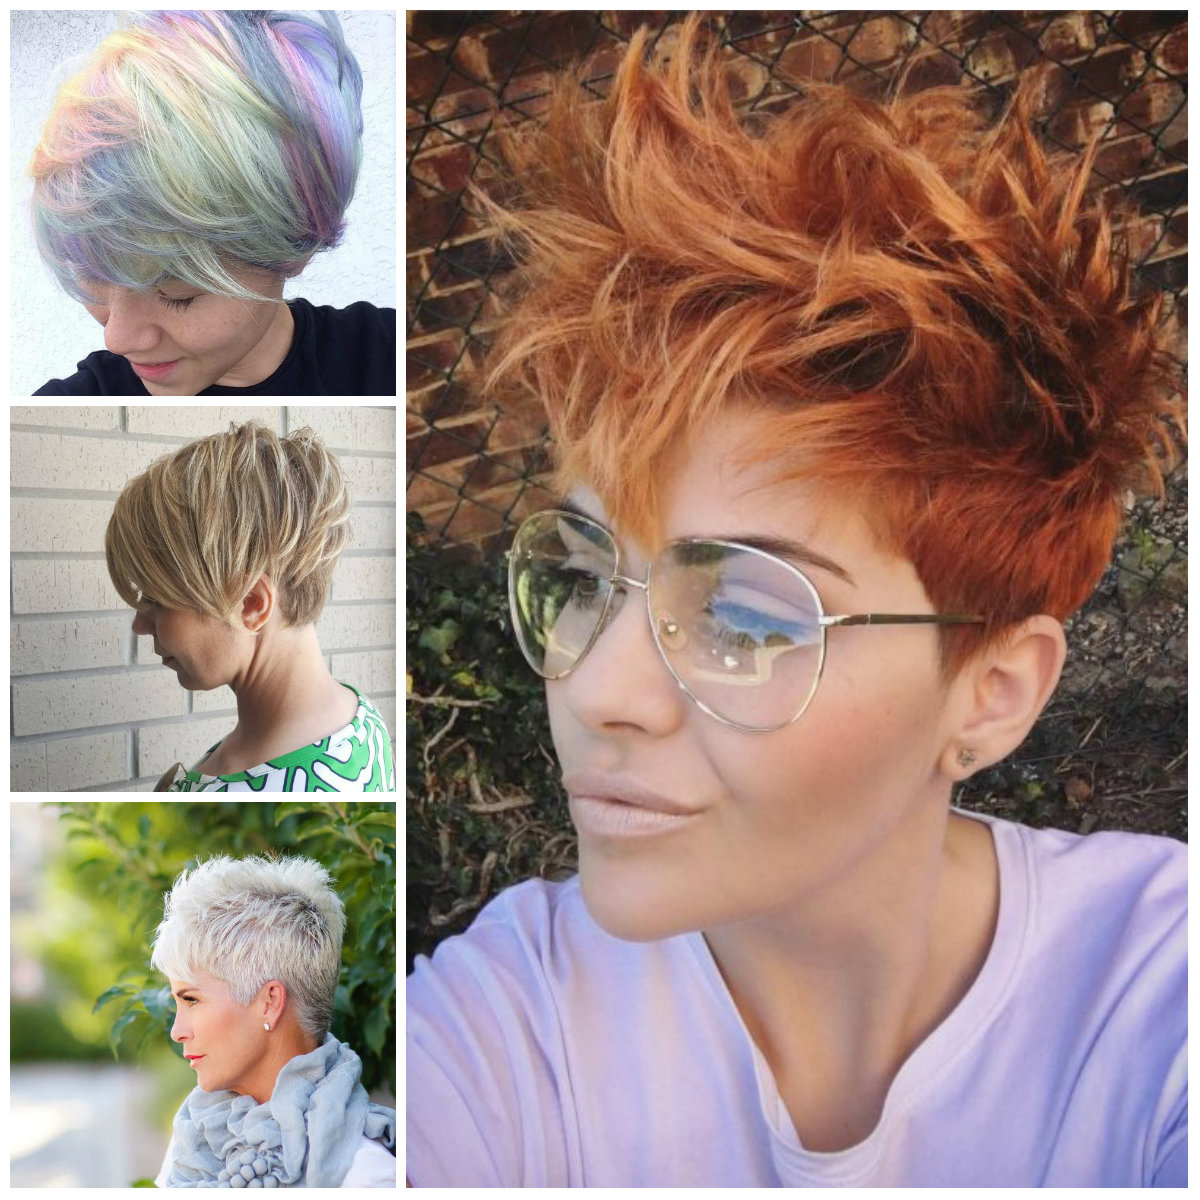 Trendy Pixie Haircuts for 2017 | 2017 Haircuts, Hairstyles and ...